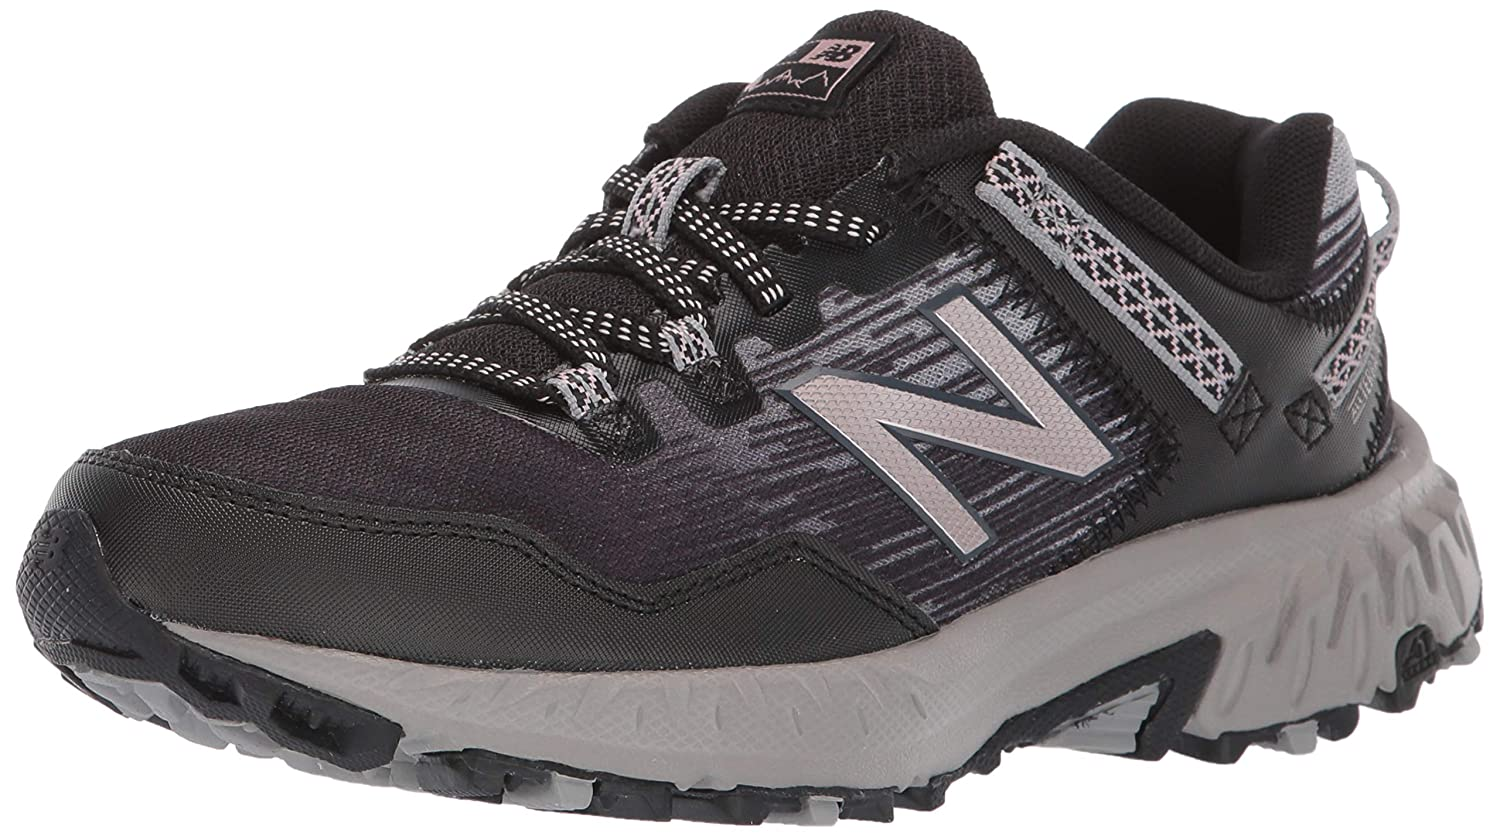 New Balance 410v6 Trail, Chaussures de Fitness Femme: Amazon